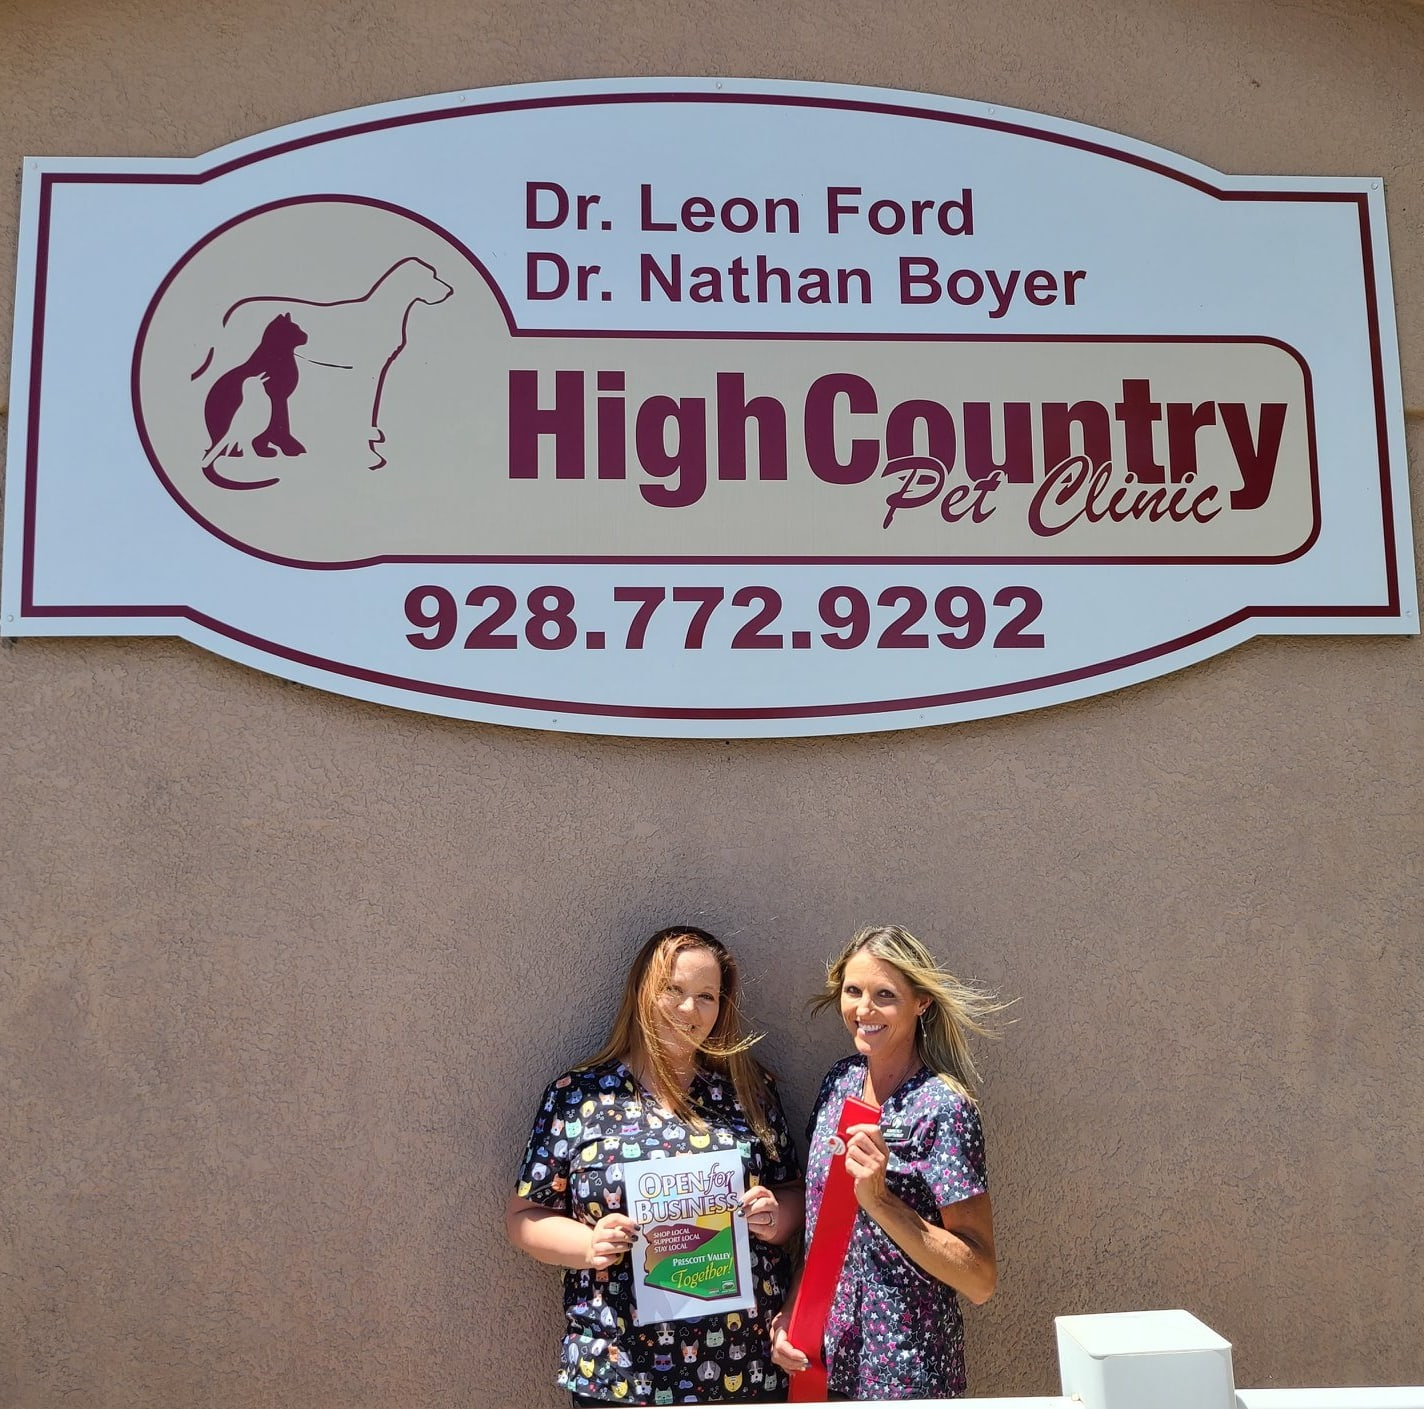 high-country-pet-clinic-w1424.jpg